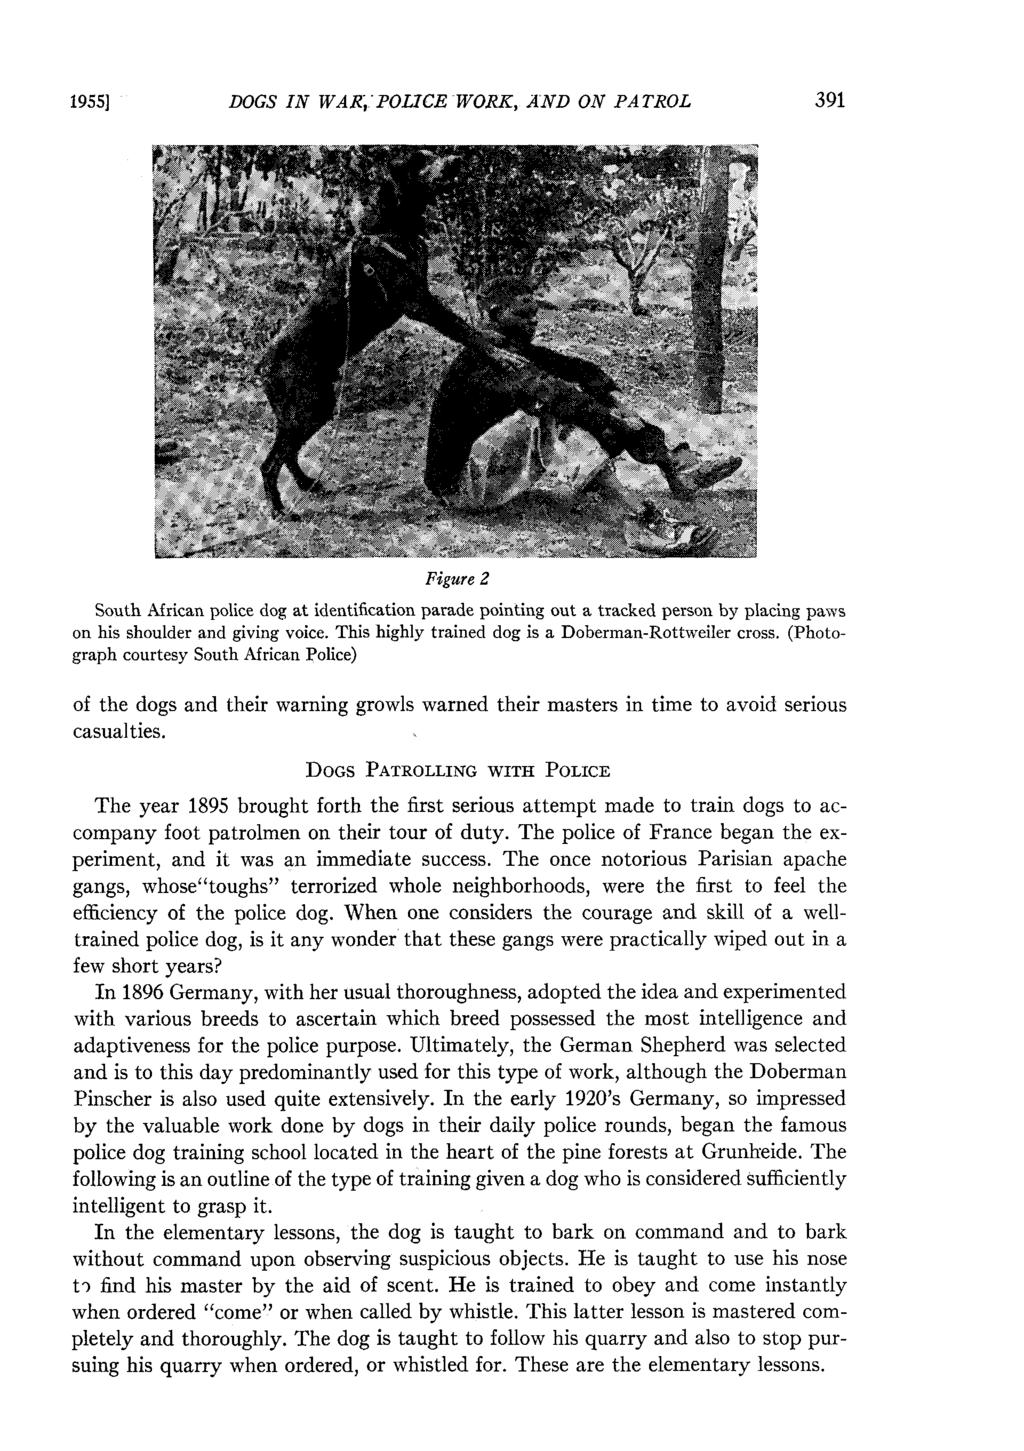 Dogs In War Police Work And On Patrol Pdf Dogmaster Trainers By Products Electric Fence Fencing 1955 Figure 2 South